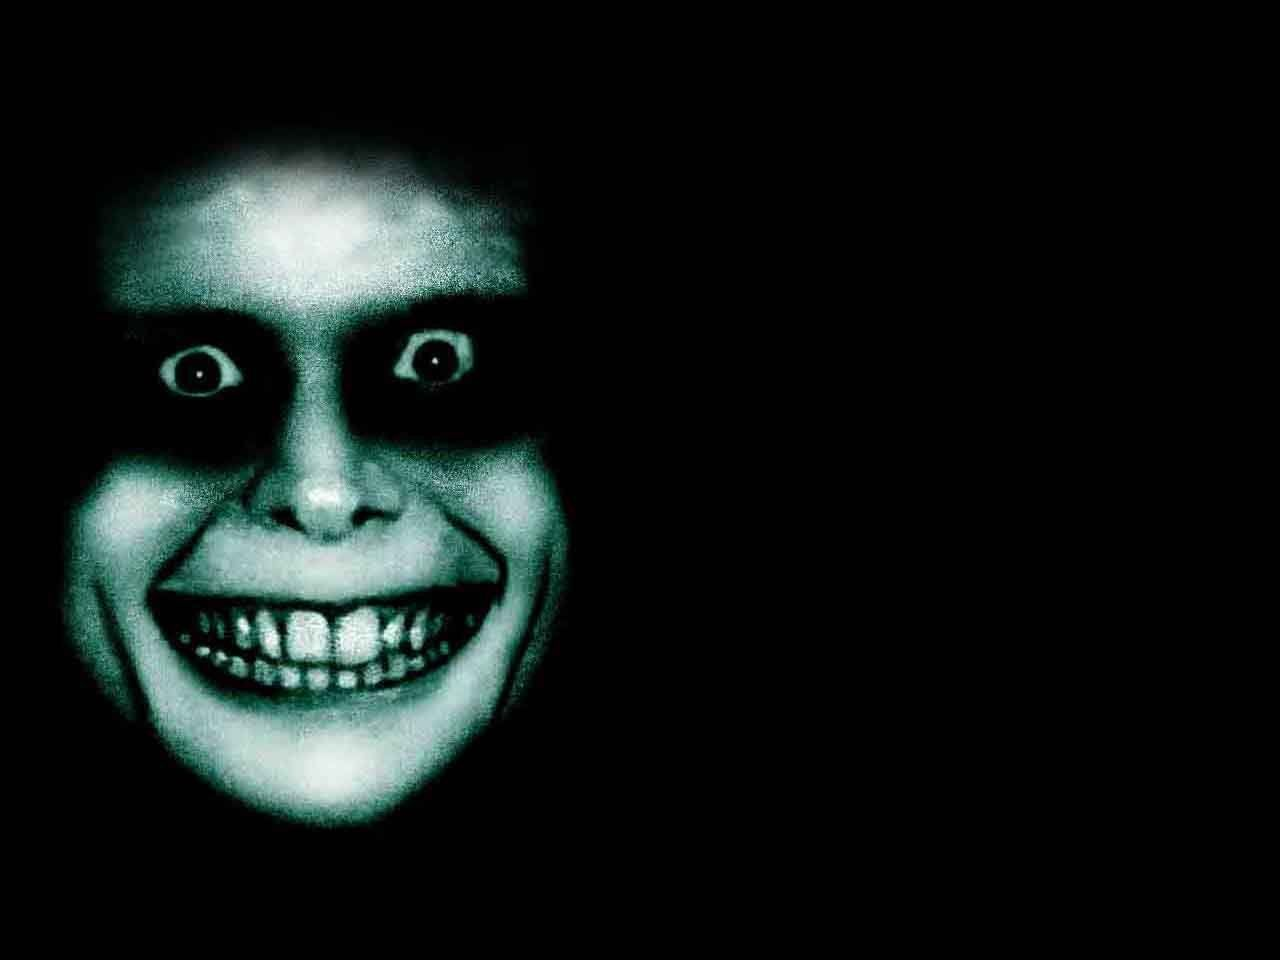 Creepy Smile Wallpapers Top Free Creepy Smile Backgrounds Wallpaperaccess The best selection of royalty free evil smile vector art, graphics and stock illustrations. creepy smile wallpapers top free